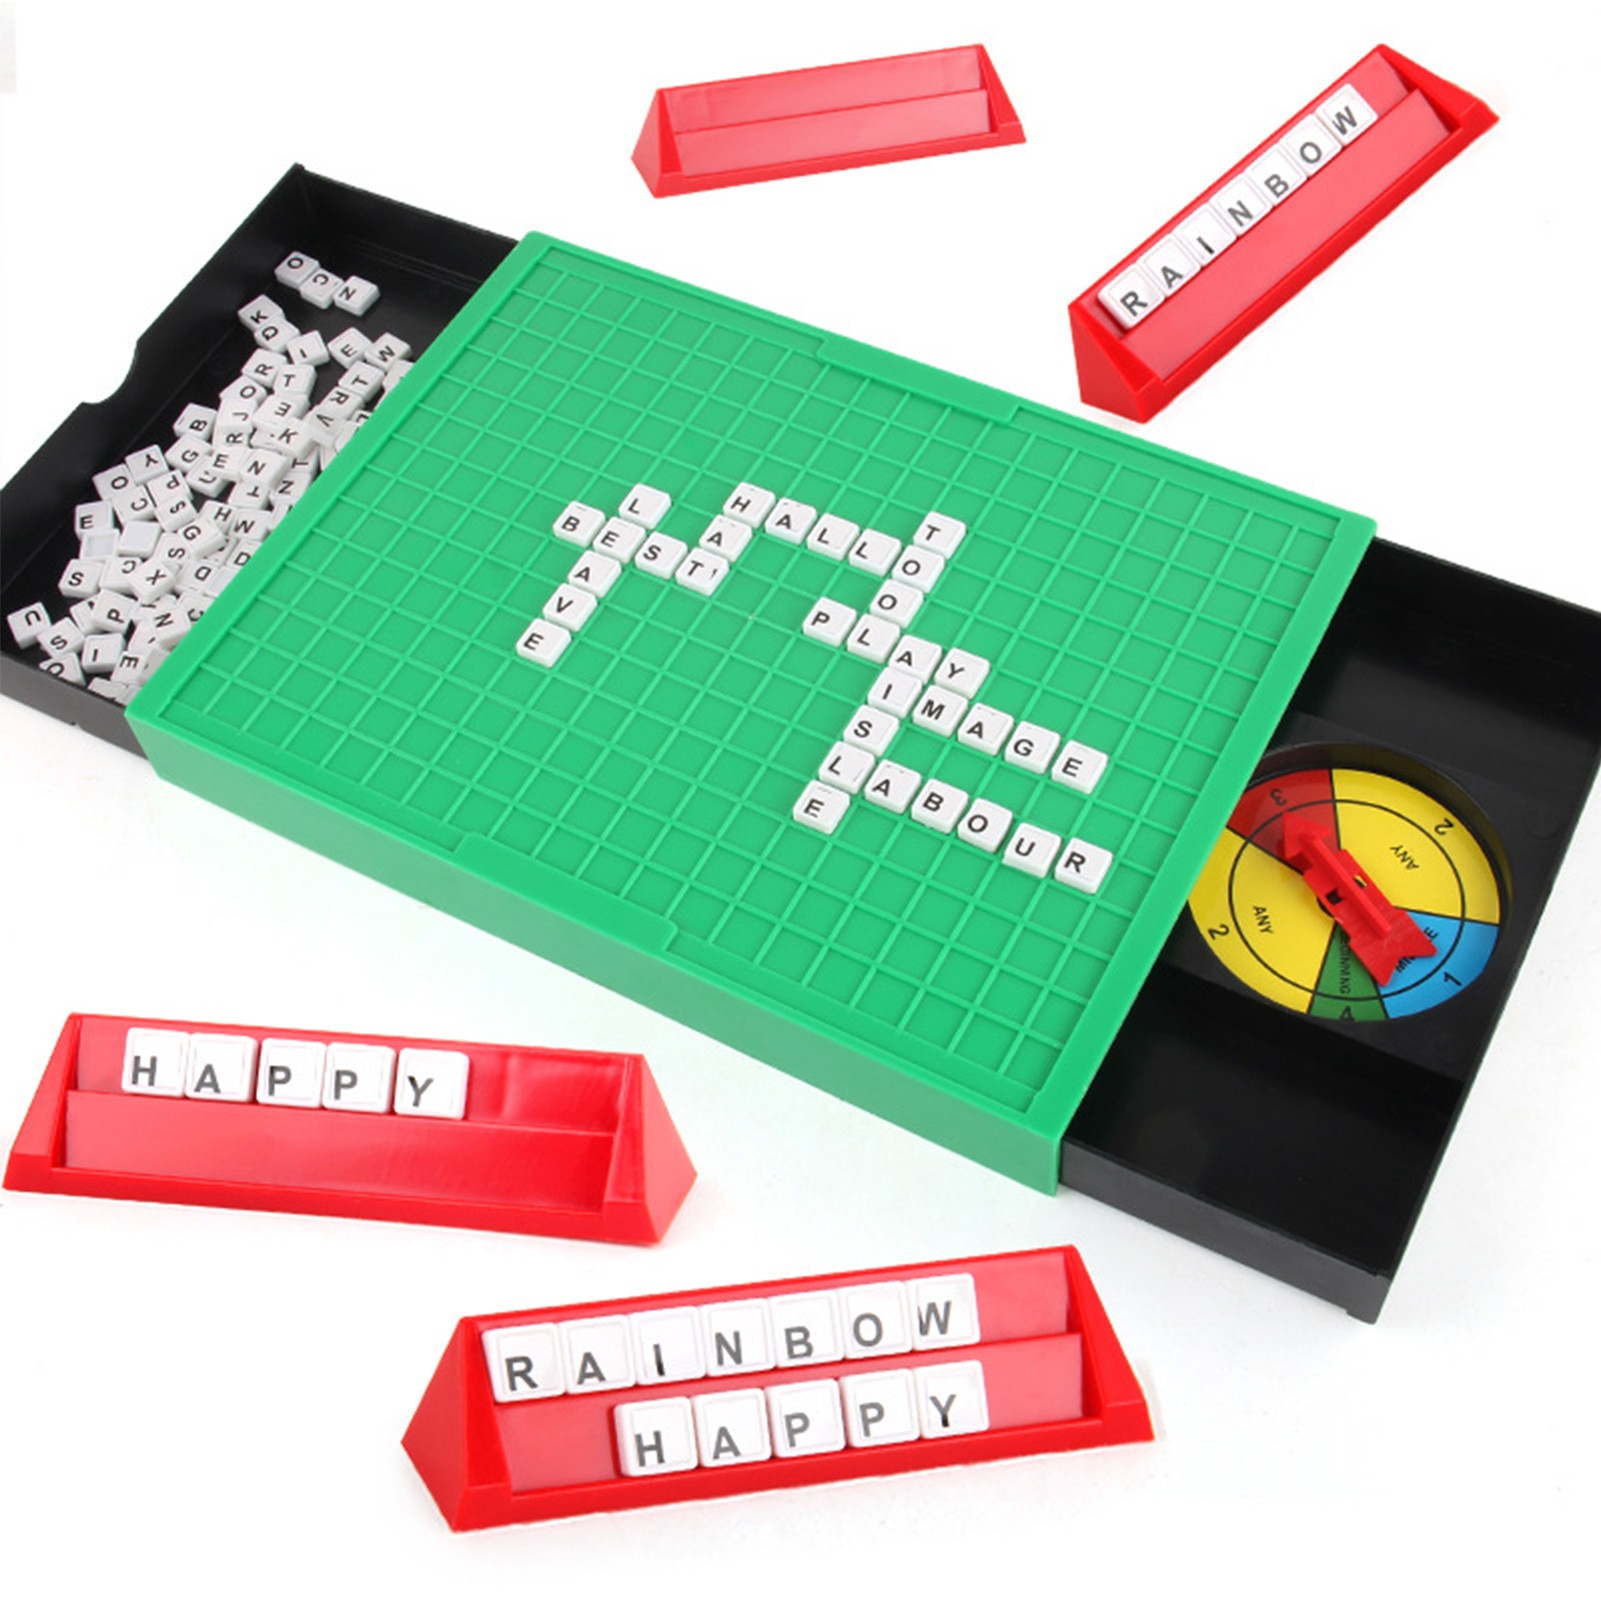 Word Spelling Game Toy Plastic Games English 100 Letters Recognition Alphabet Kids Learning Education